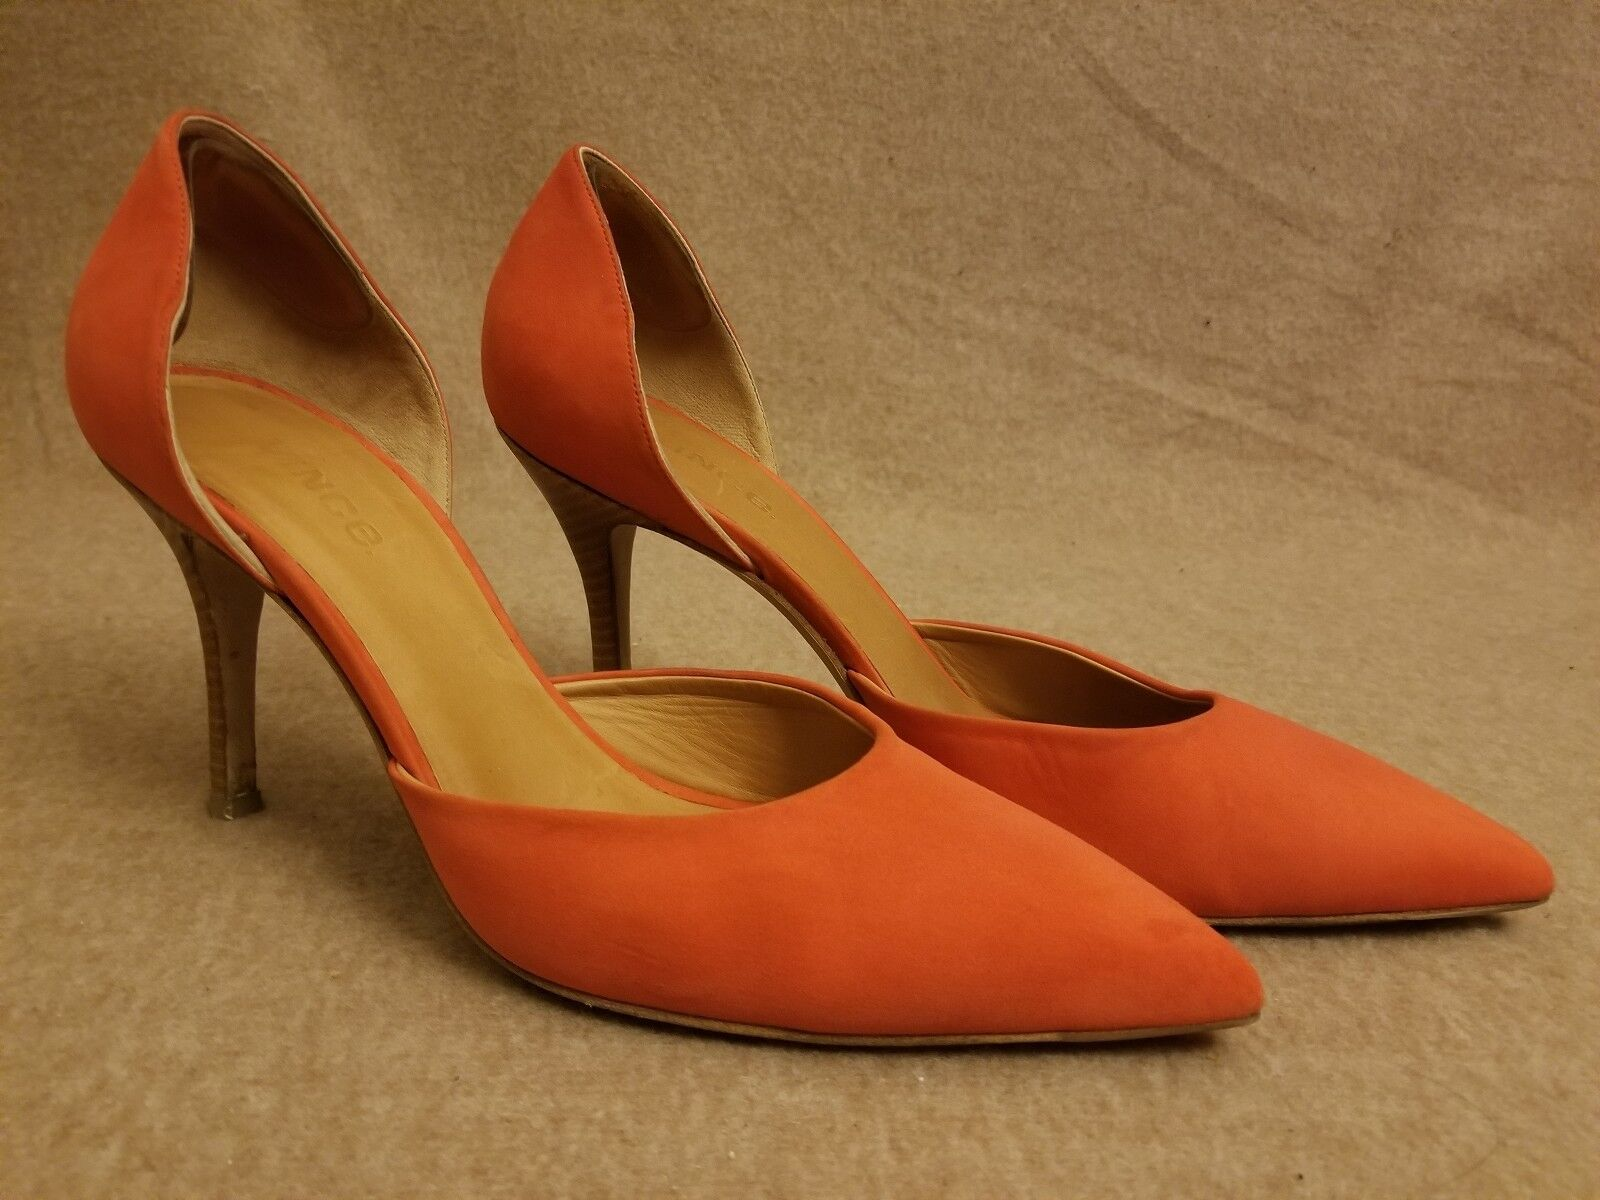 VINCE Celeste Donna D'Orsay Orange Suede Heels Made in Italy Shoes Size 10 M